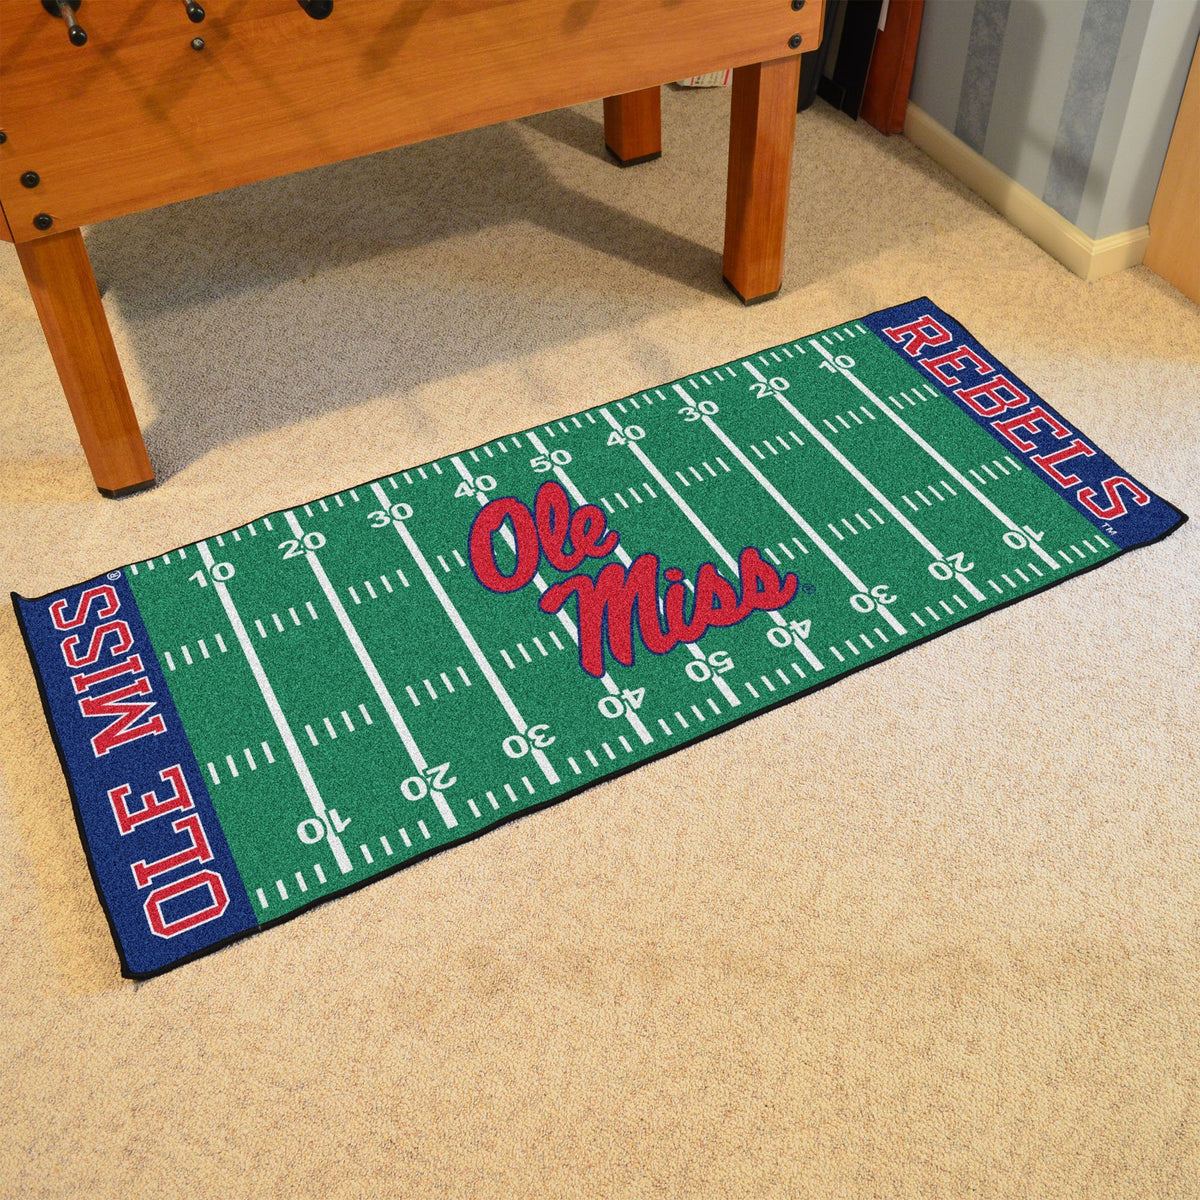 Collegiate - Football Field Runner Collegiate Mats, Rectangular Mats, Football Field Runner, Collegiate, Home Fan Mats Ole Miss